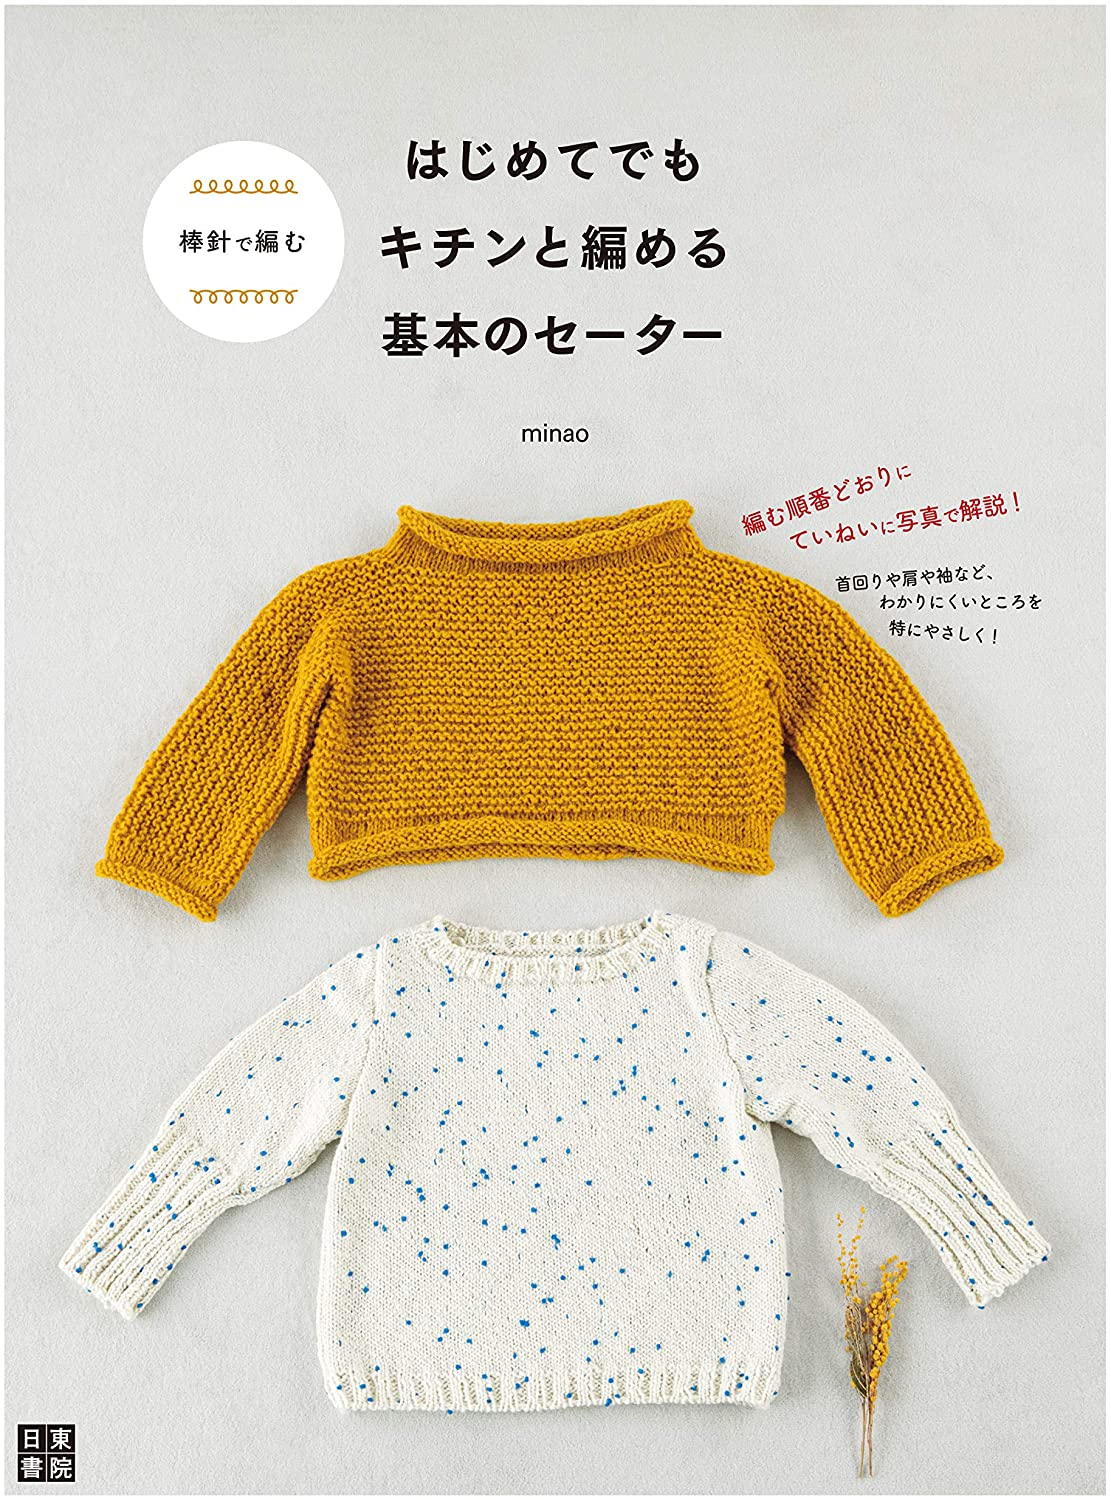 Knitting with a stick needle A basic sweater that can be knitted even for the first time